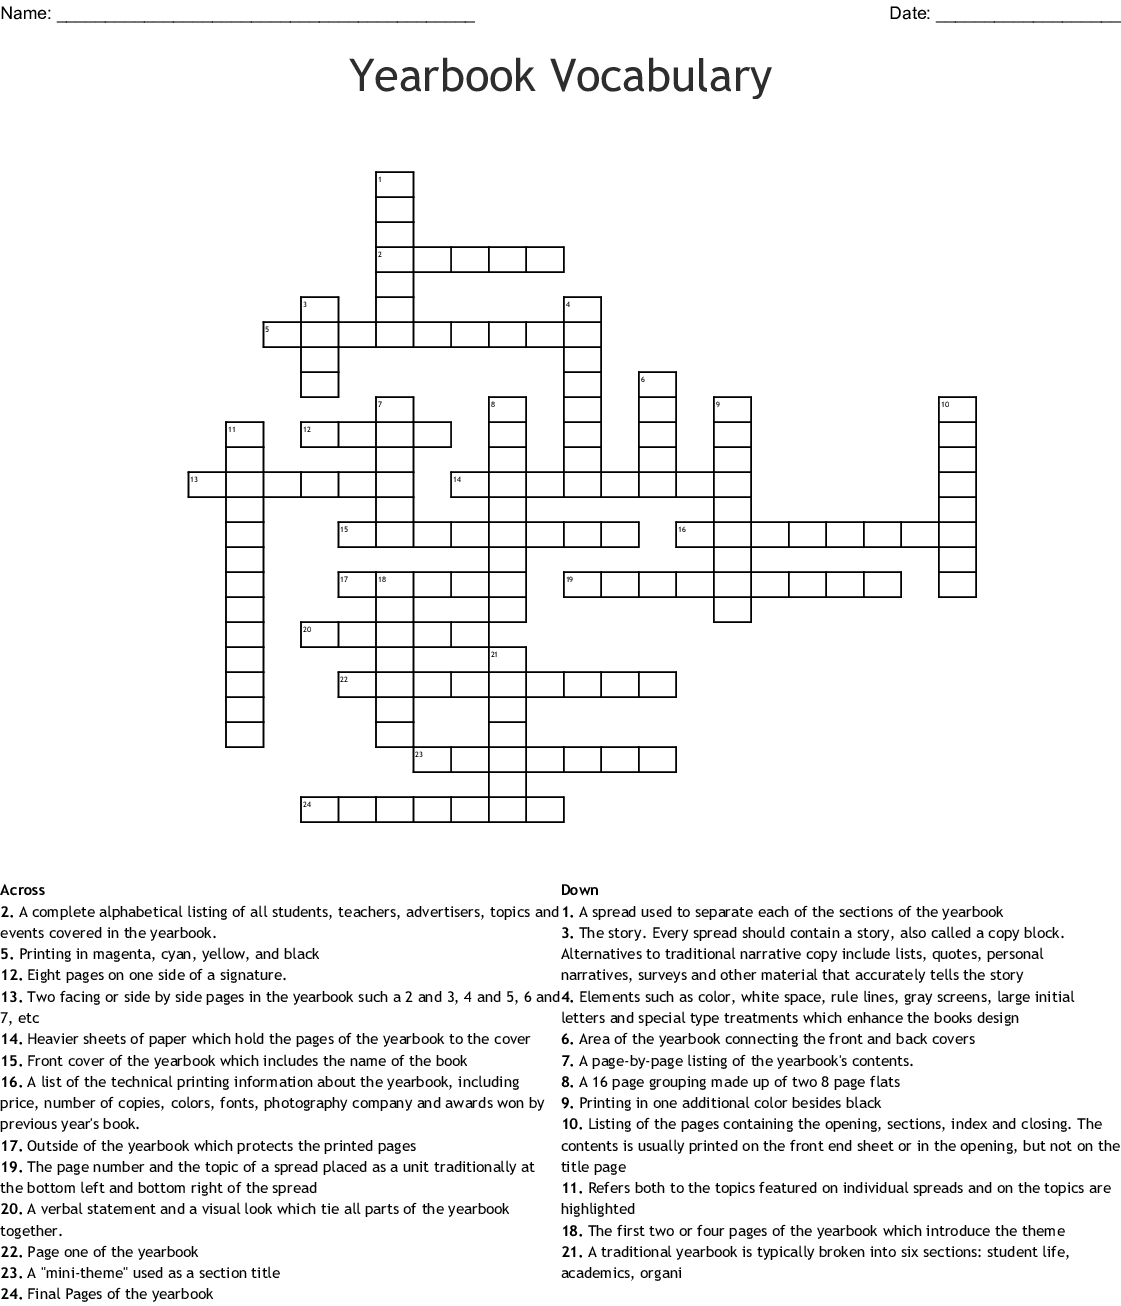 Yearbook Vocabulary Word Search